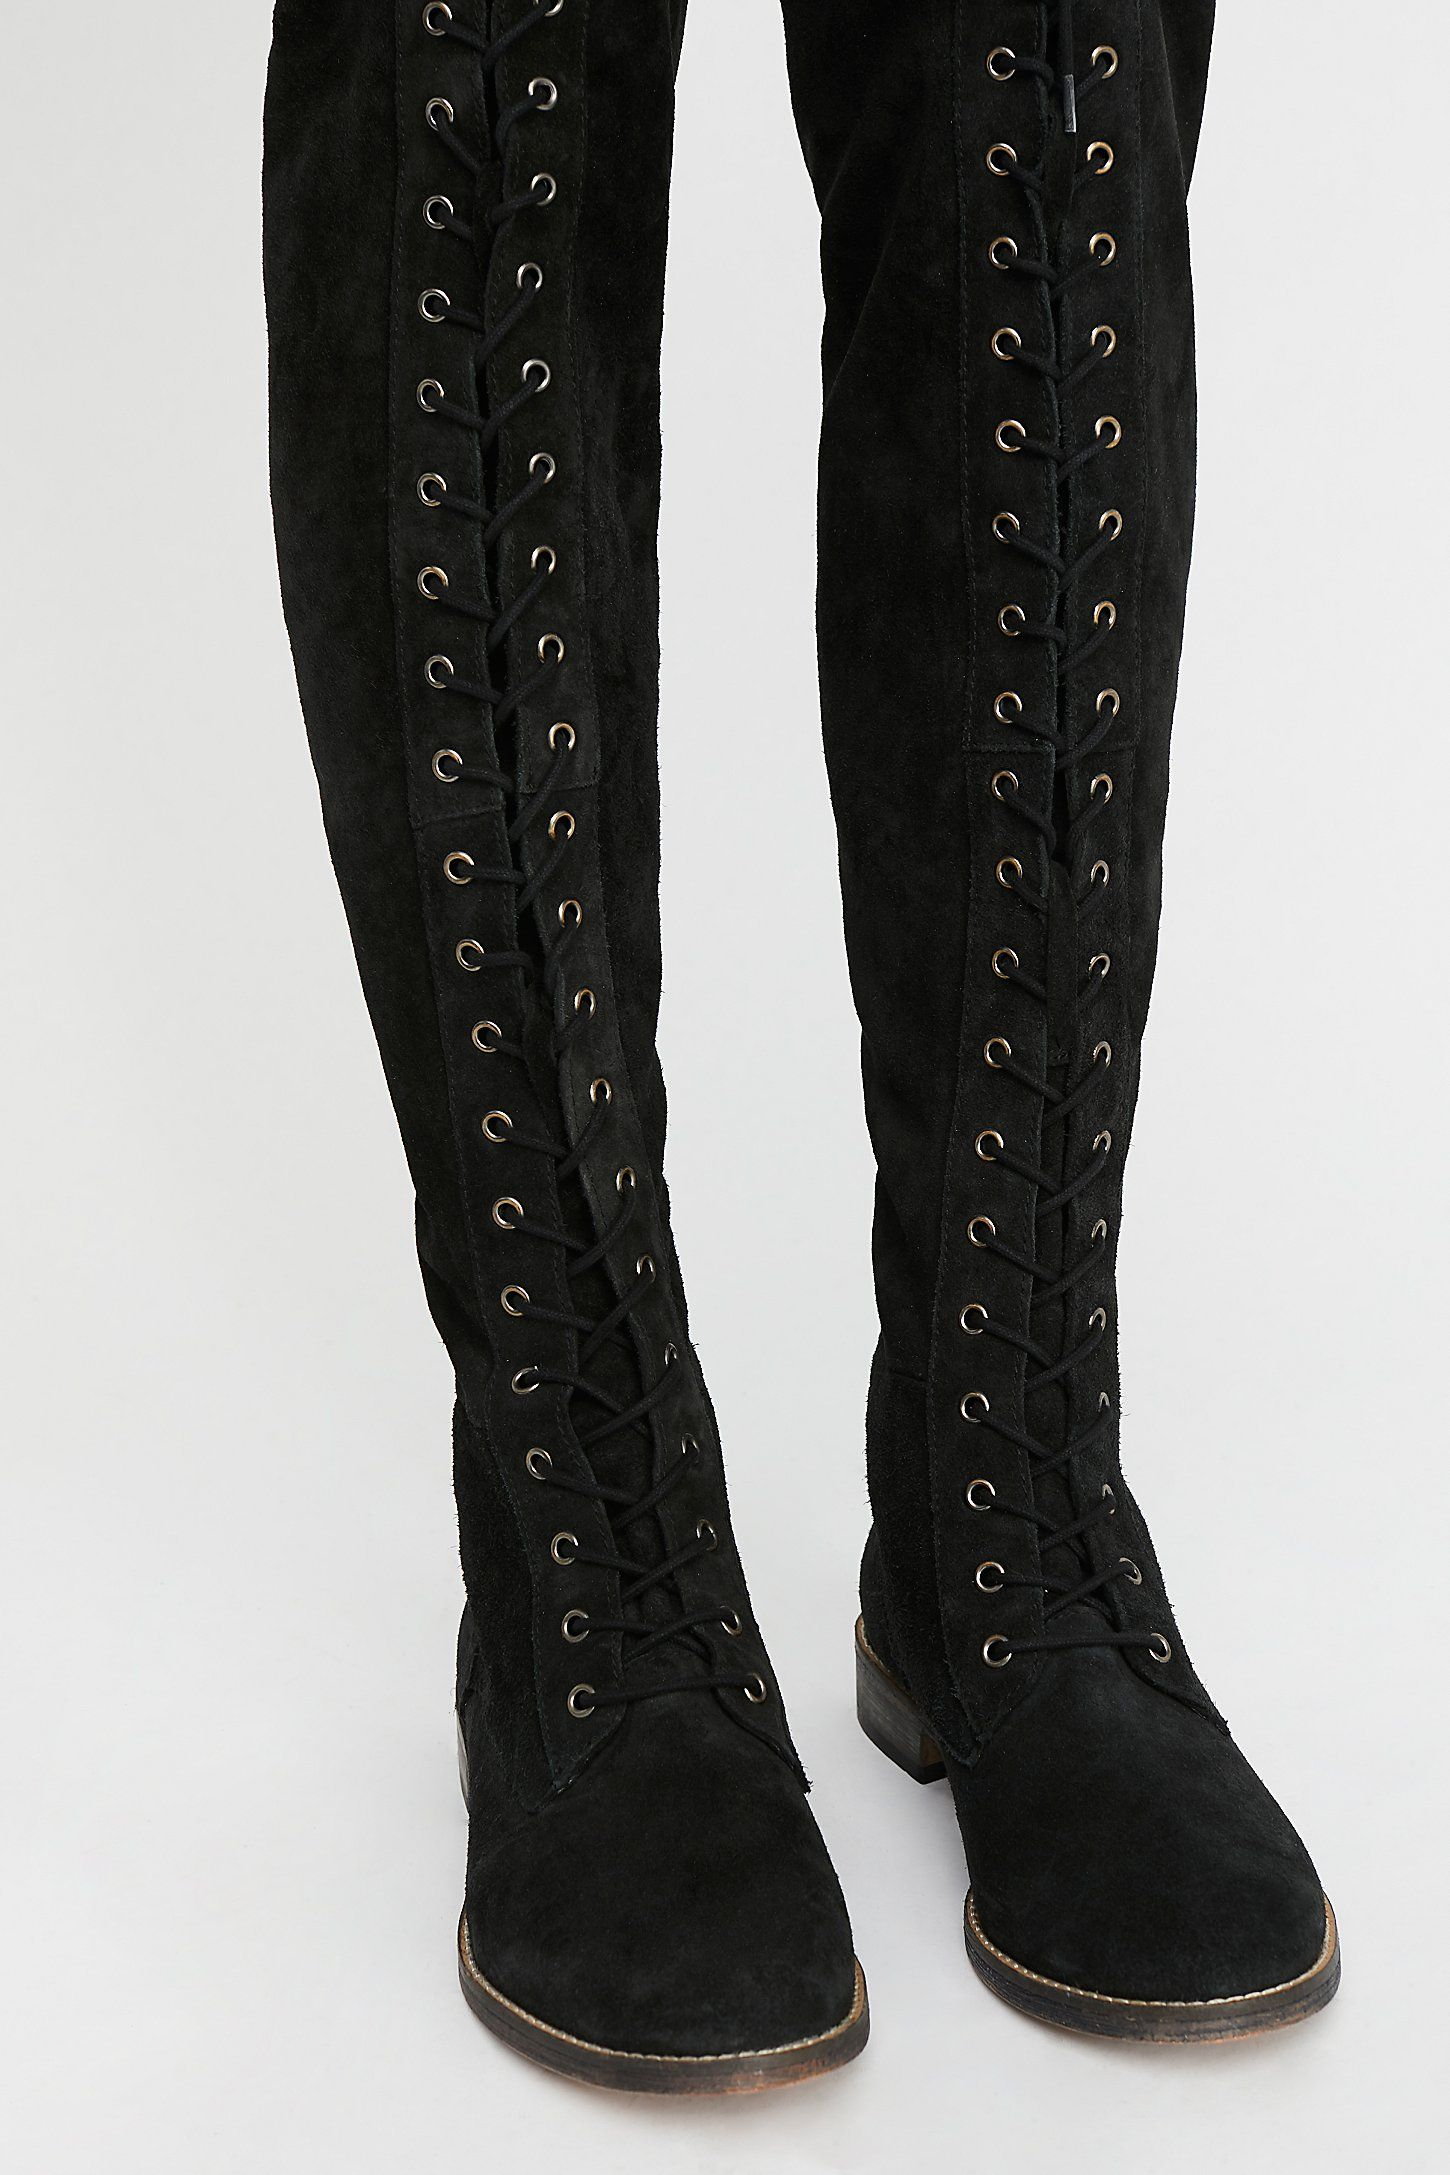 fb97b5d0c479 Tennessee Lace Up Boot - Black suede